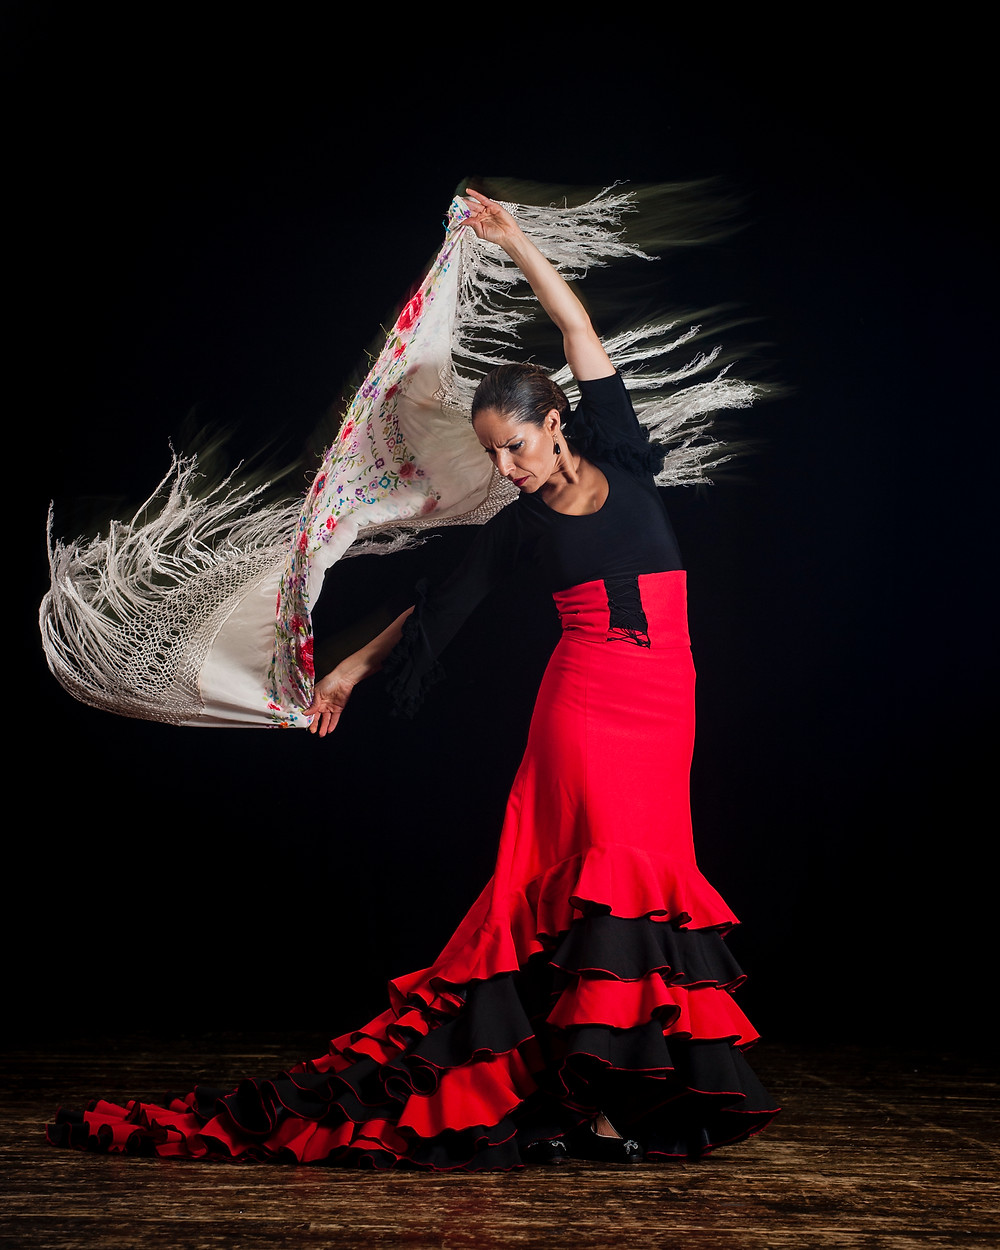 Throughout history, Flamenco Dancers express deep emotion through body language and facial expressions